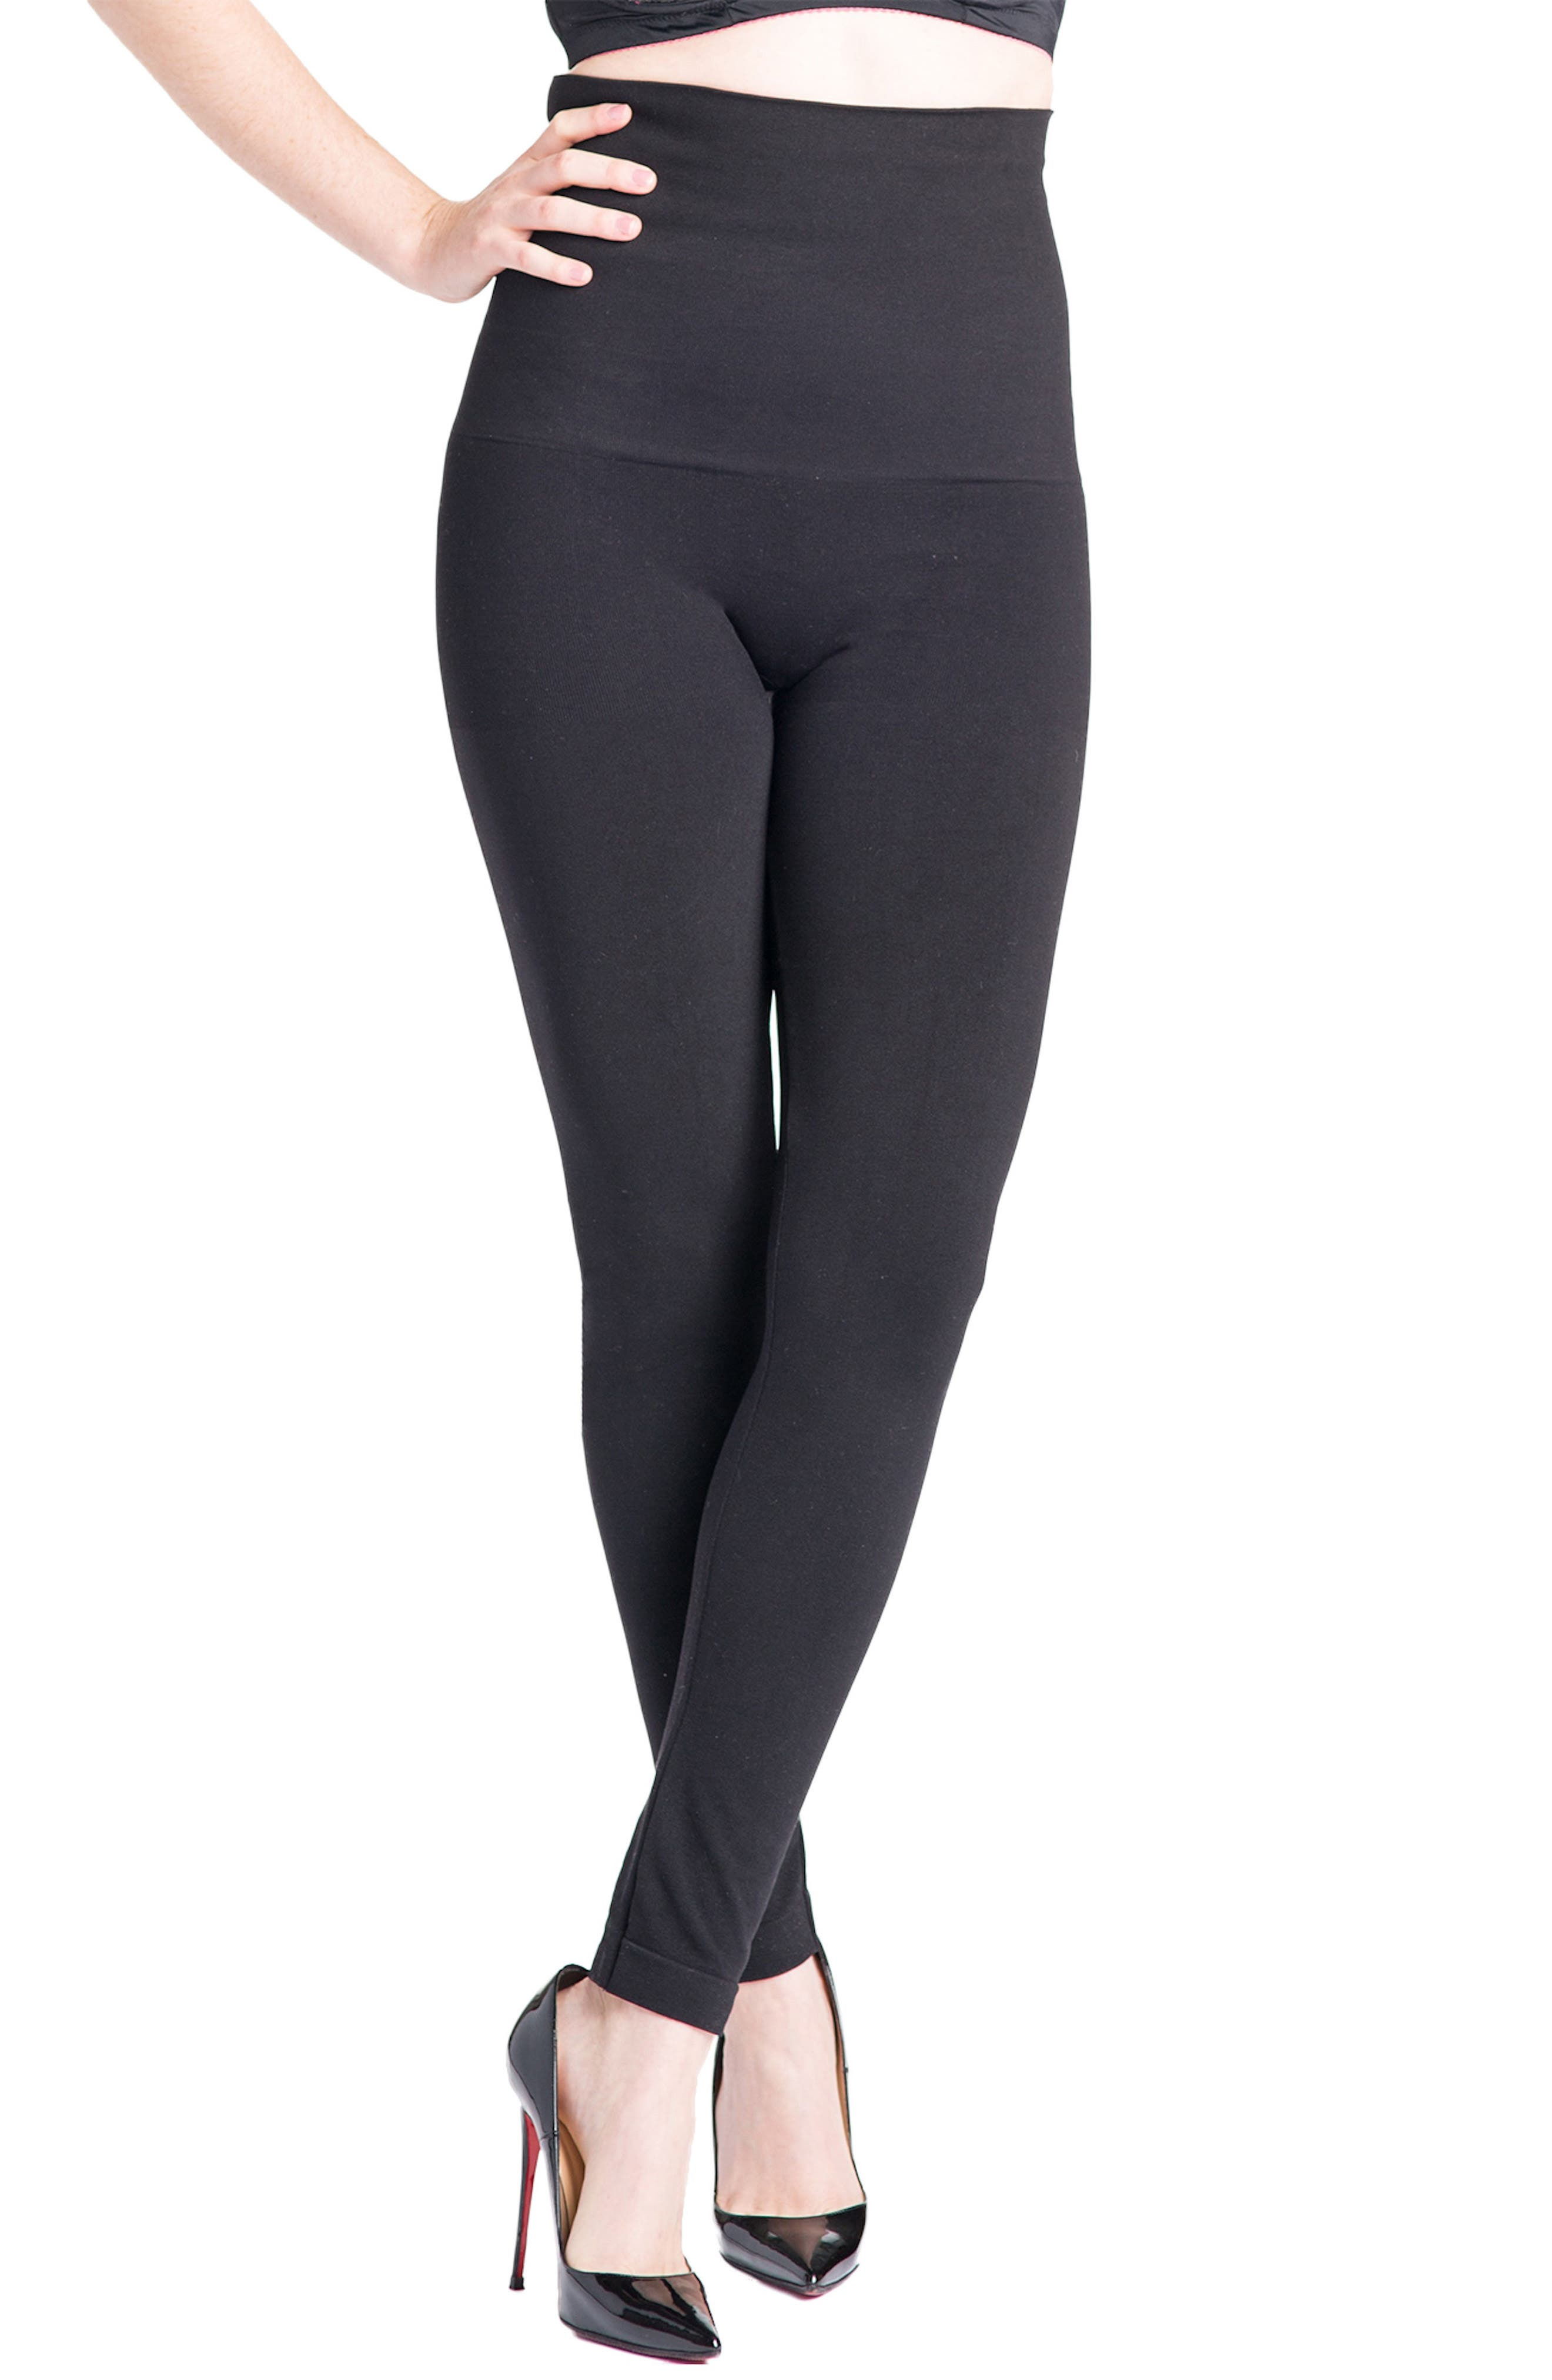 Snapback Postpartum Leggings,                             Main thumbnail 1, color,                             BLACK